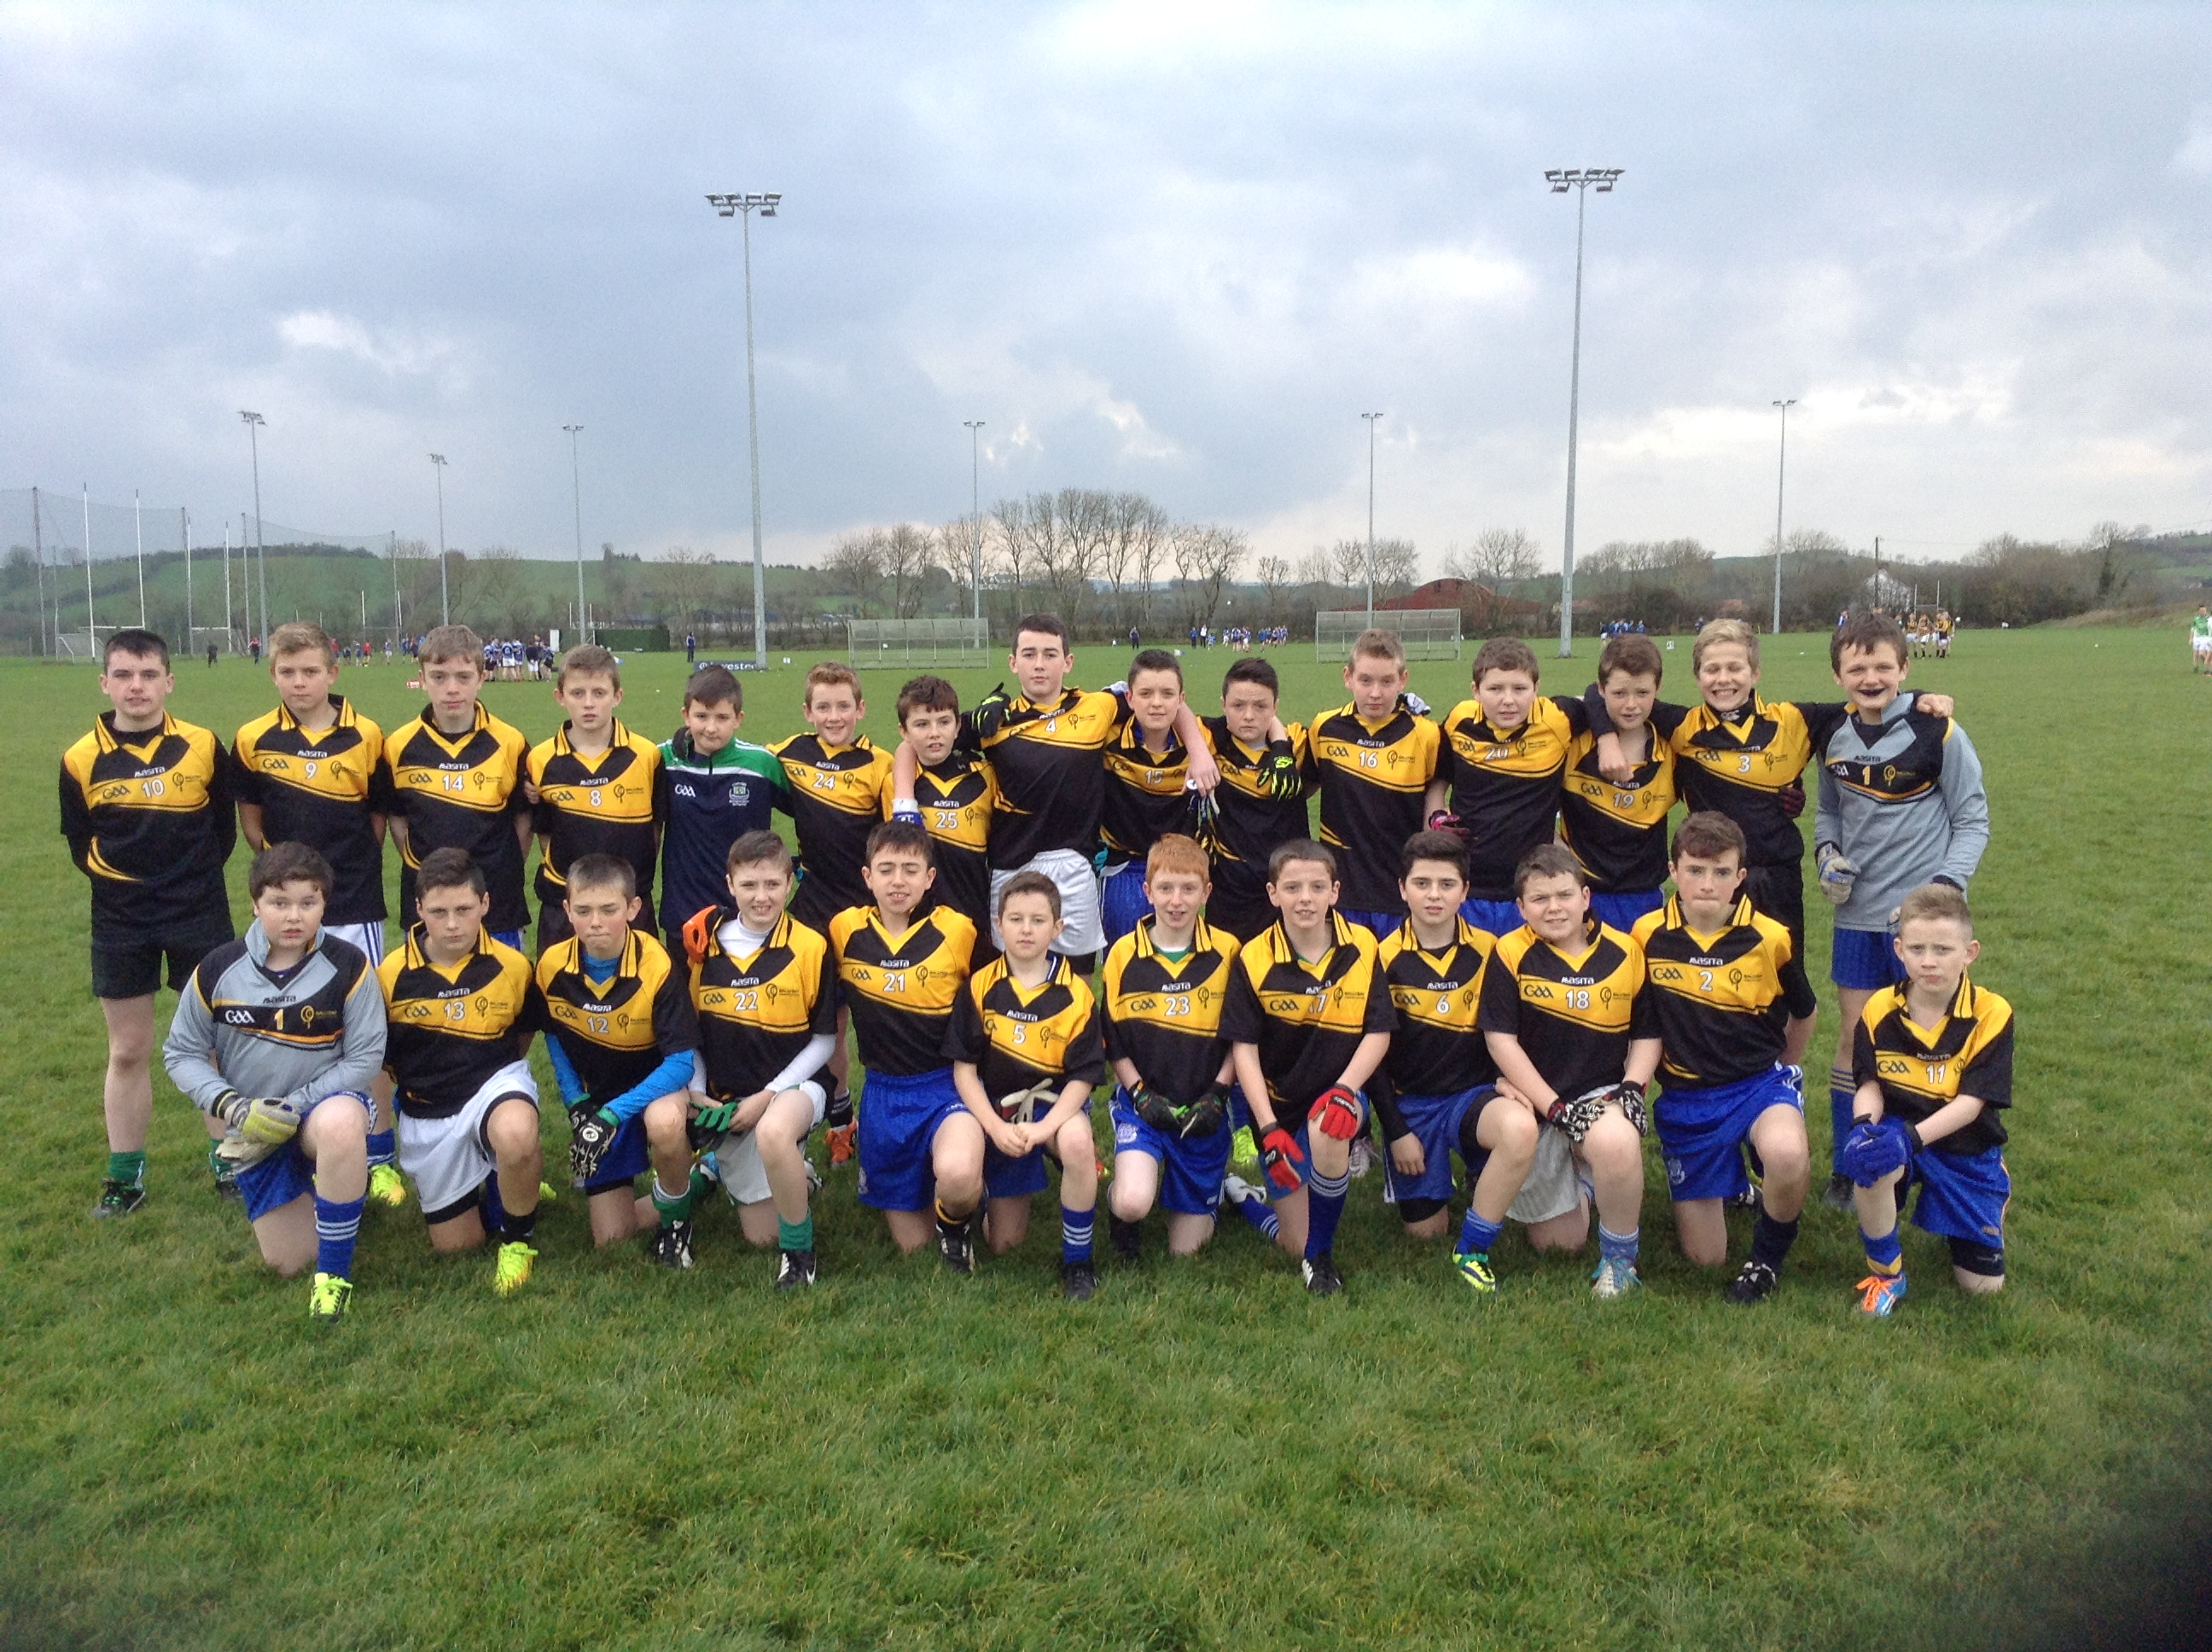 1st and 2nd Year Super Touch Football Blitz